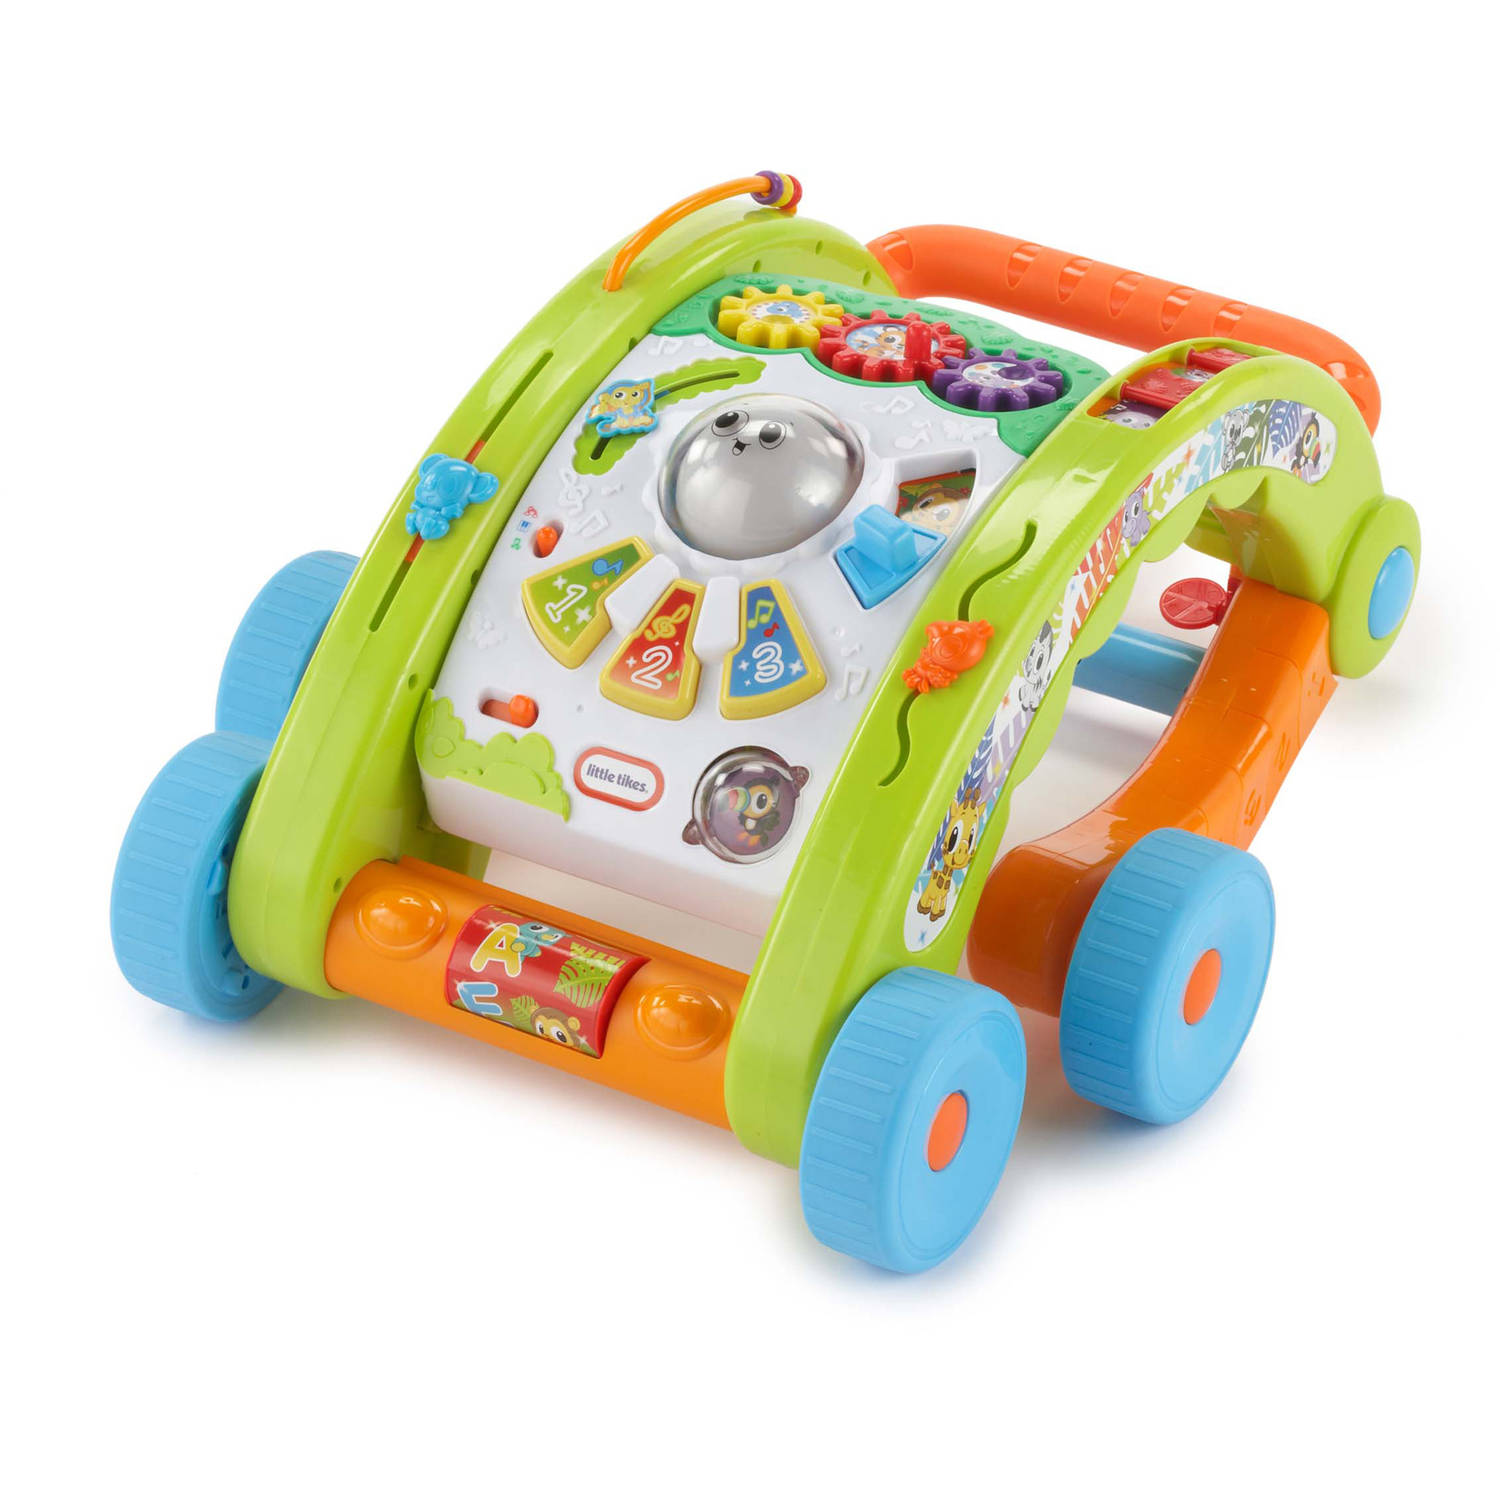 """Piano keys Spinning ball 2 animal clickers Gears that turn Peek a boo slider that roars and has a mirror Requires 3 """"AA"""" alkaline batteries included"""